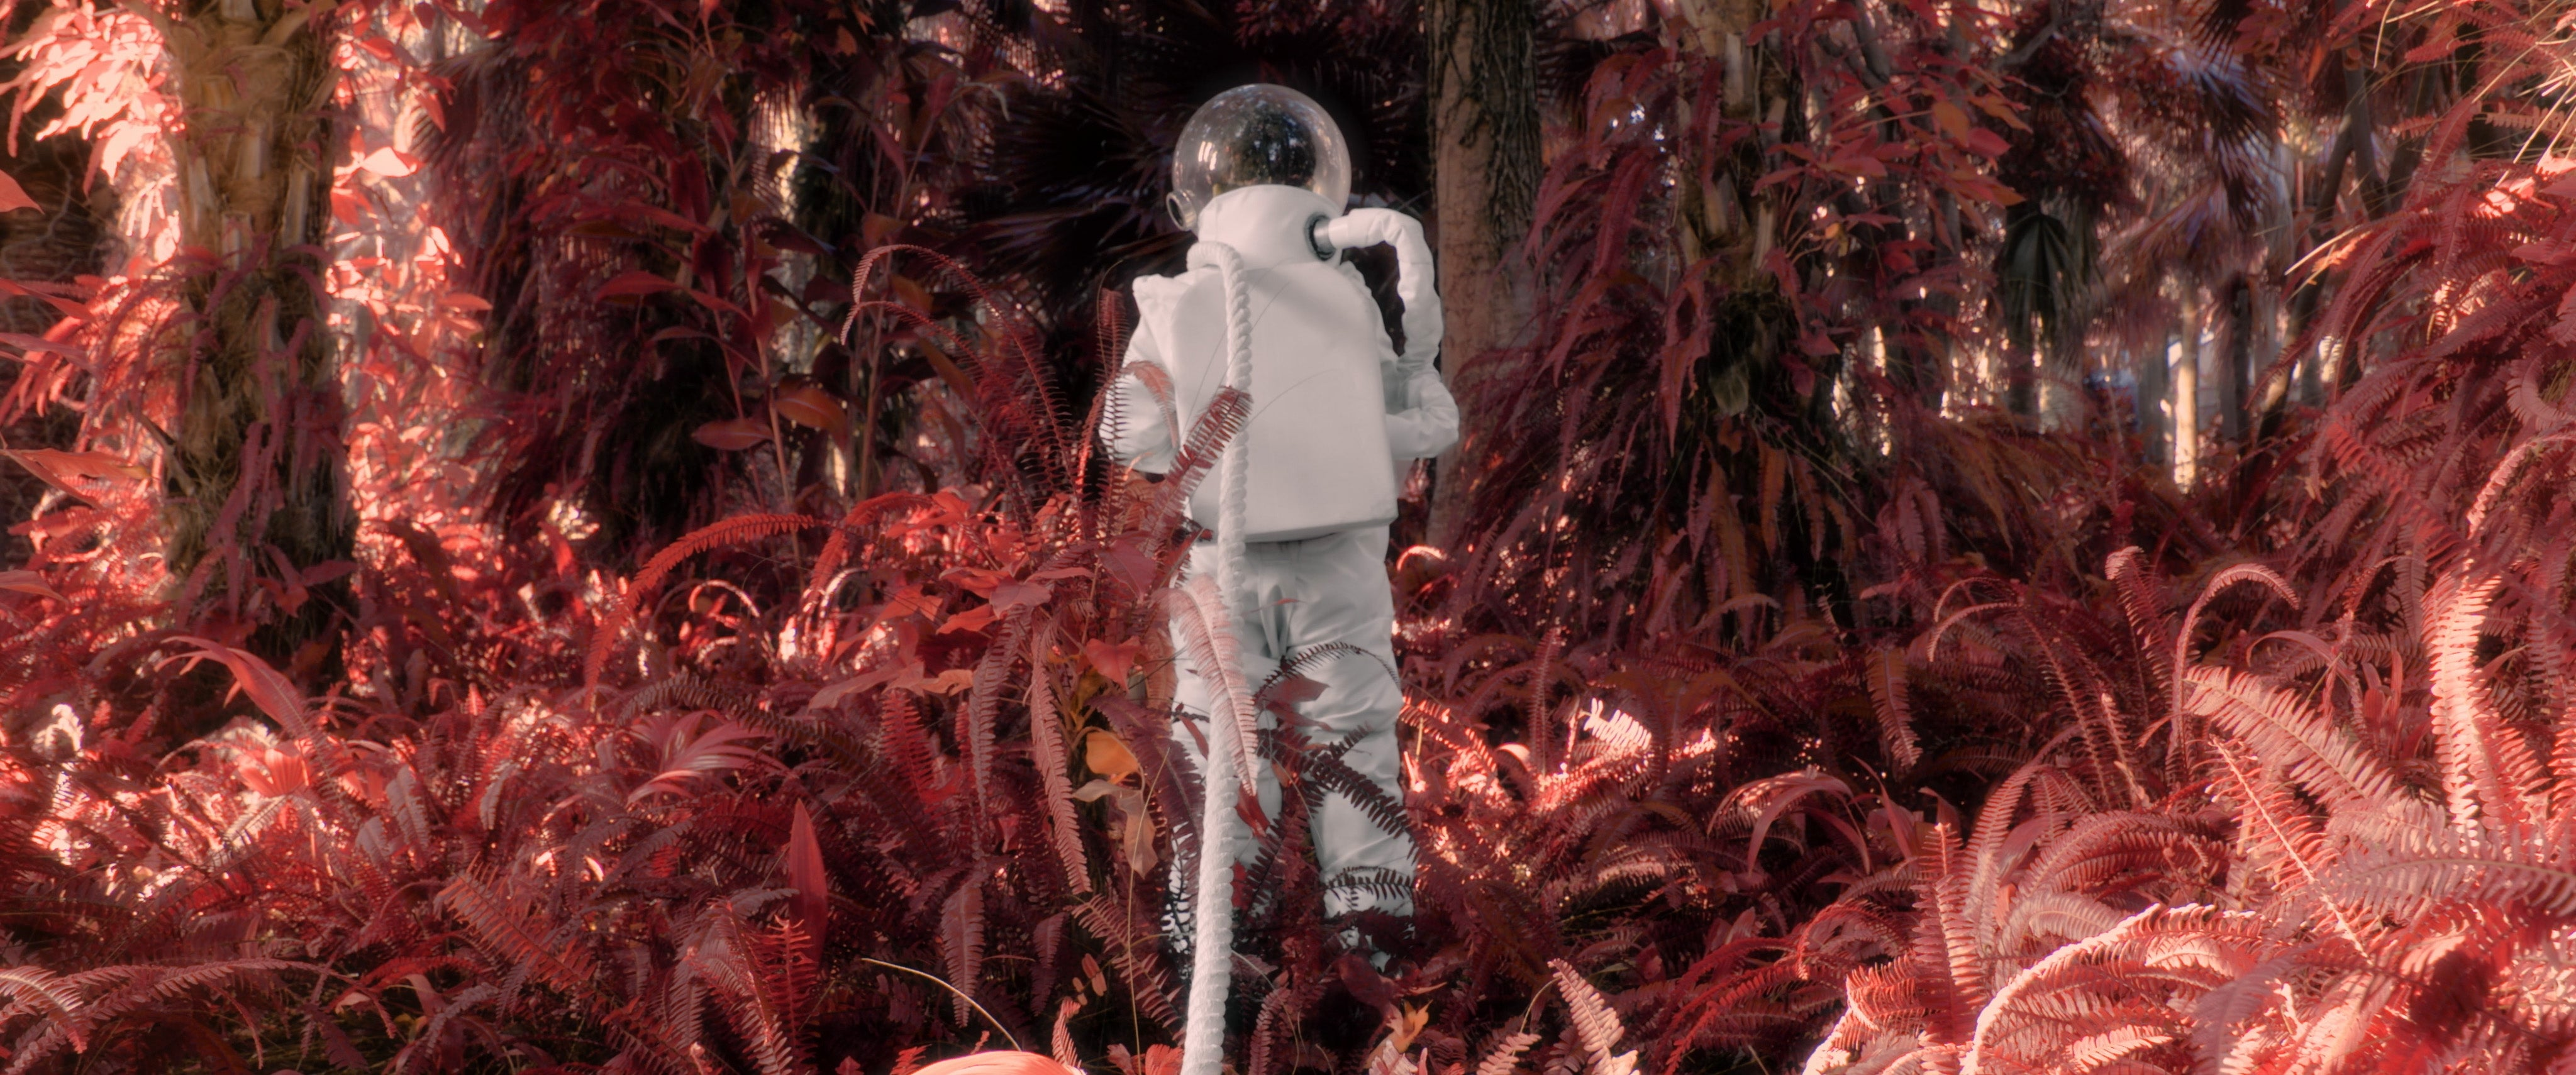 A Young Astronaut Follows His Space-Exploration Dreams In This Whimsical Music Video